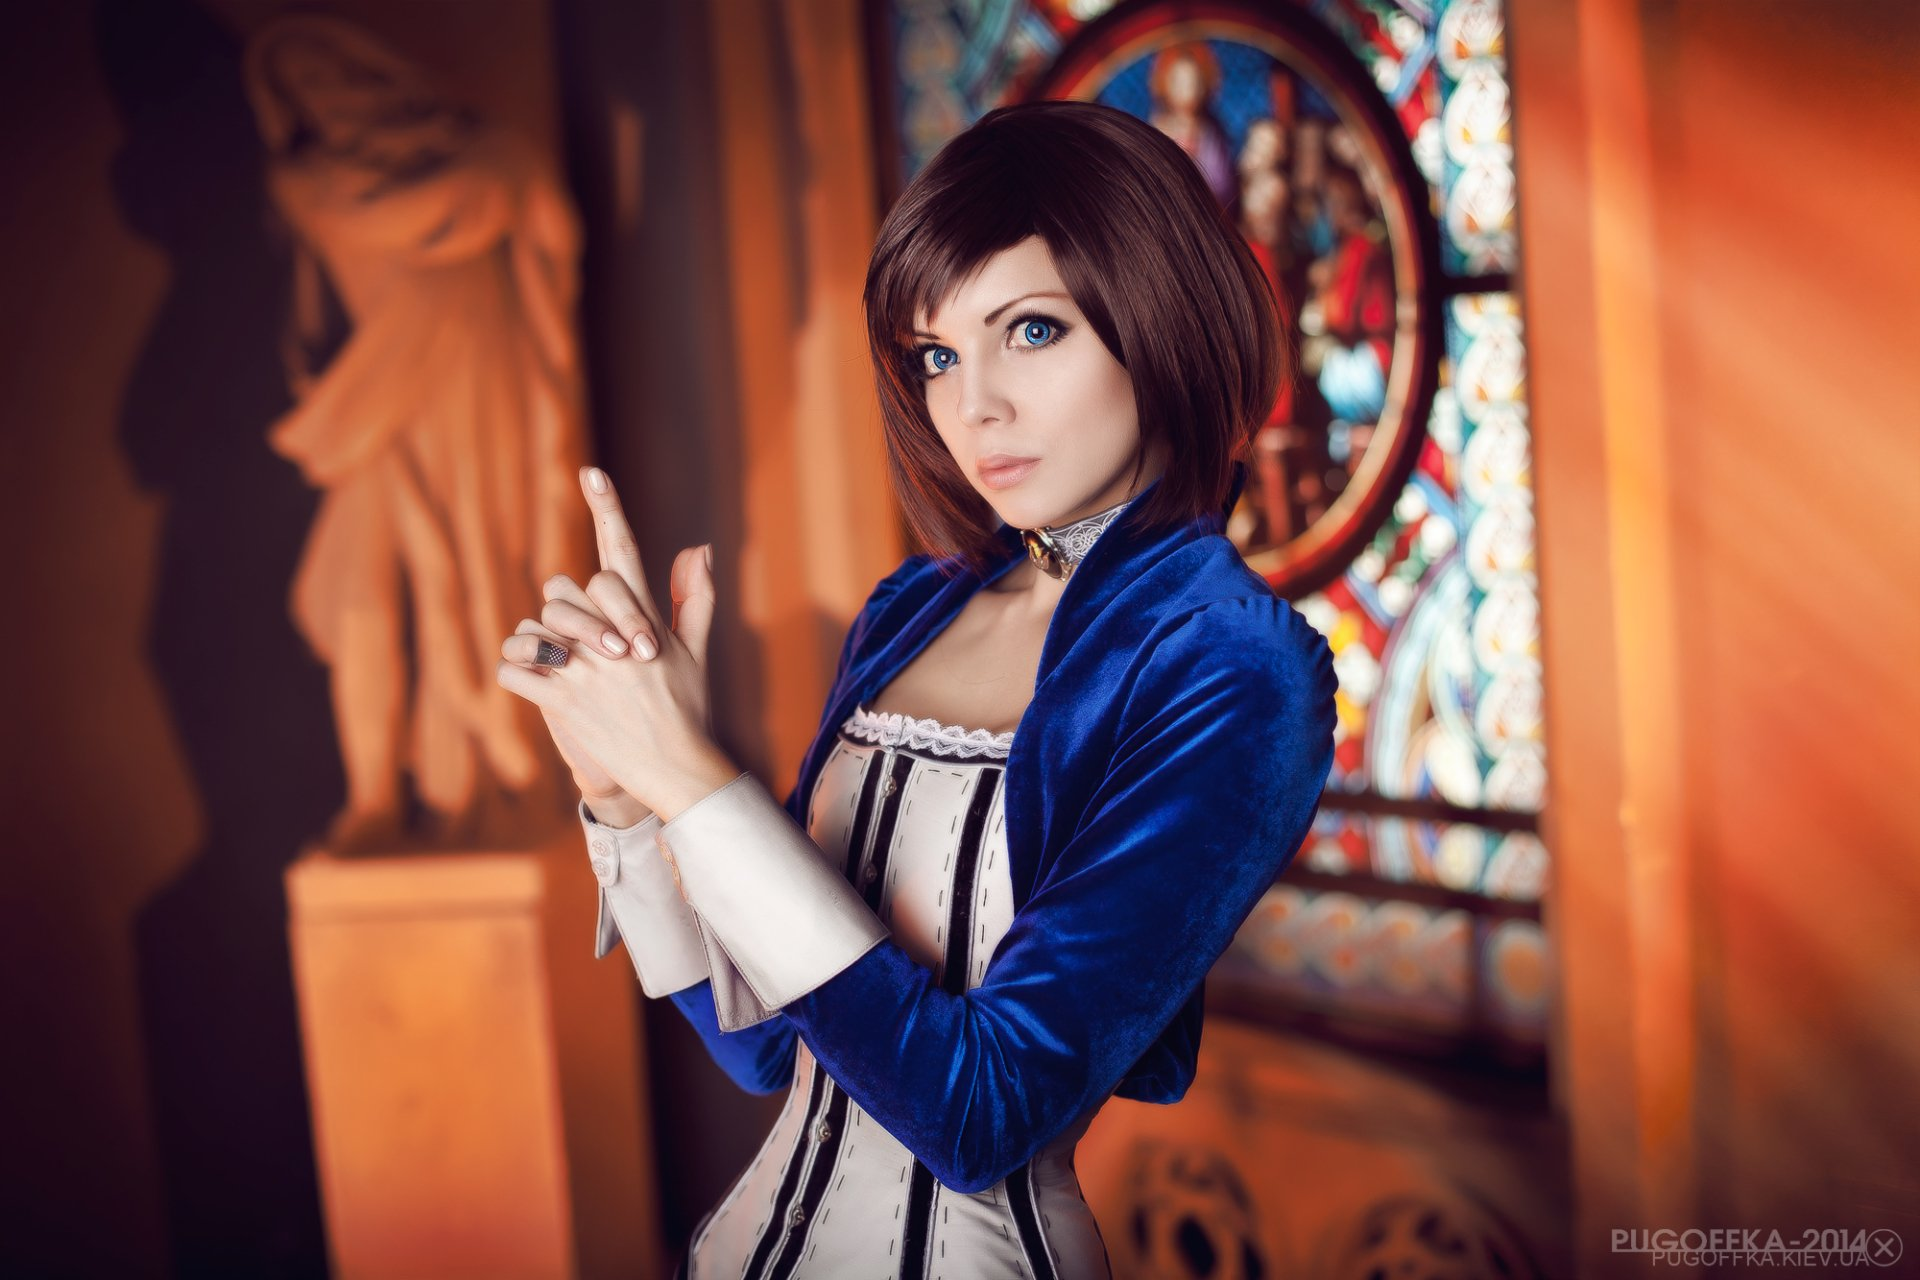 Women - Cosplay  Bioshock Infinite Wallpaper